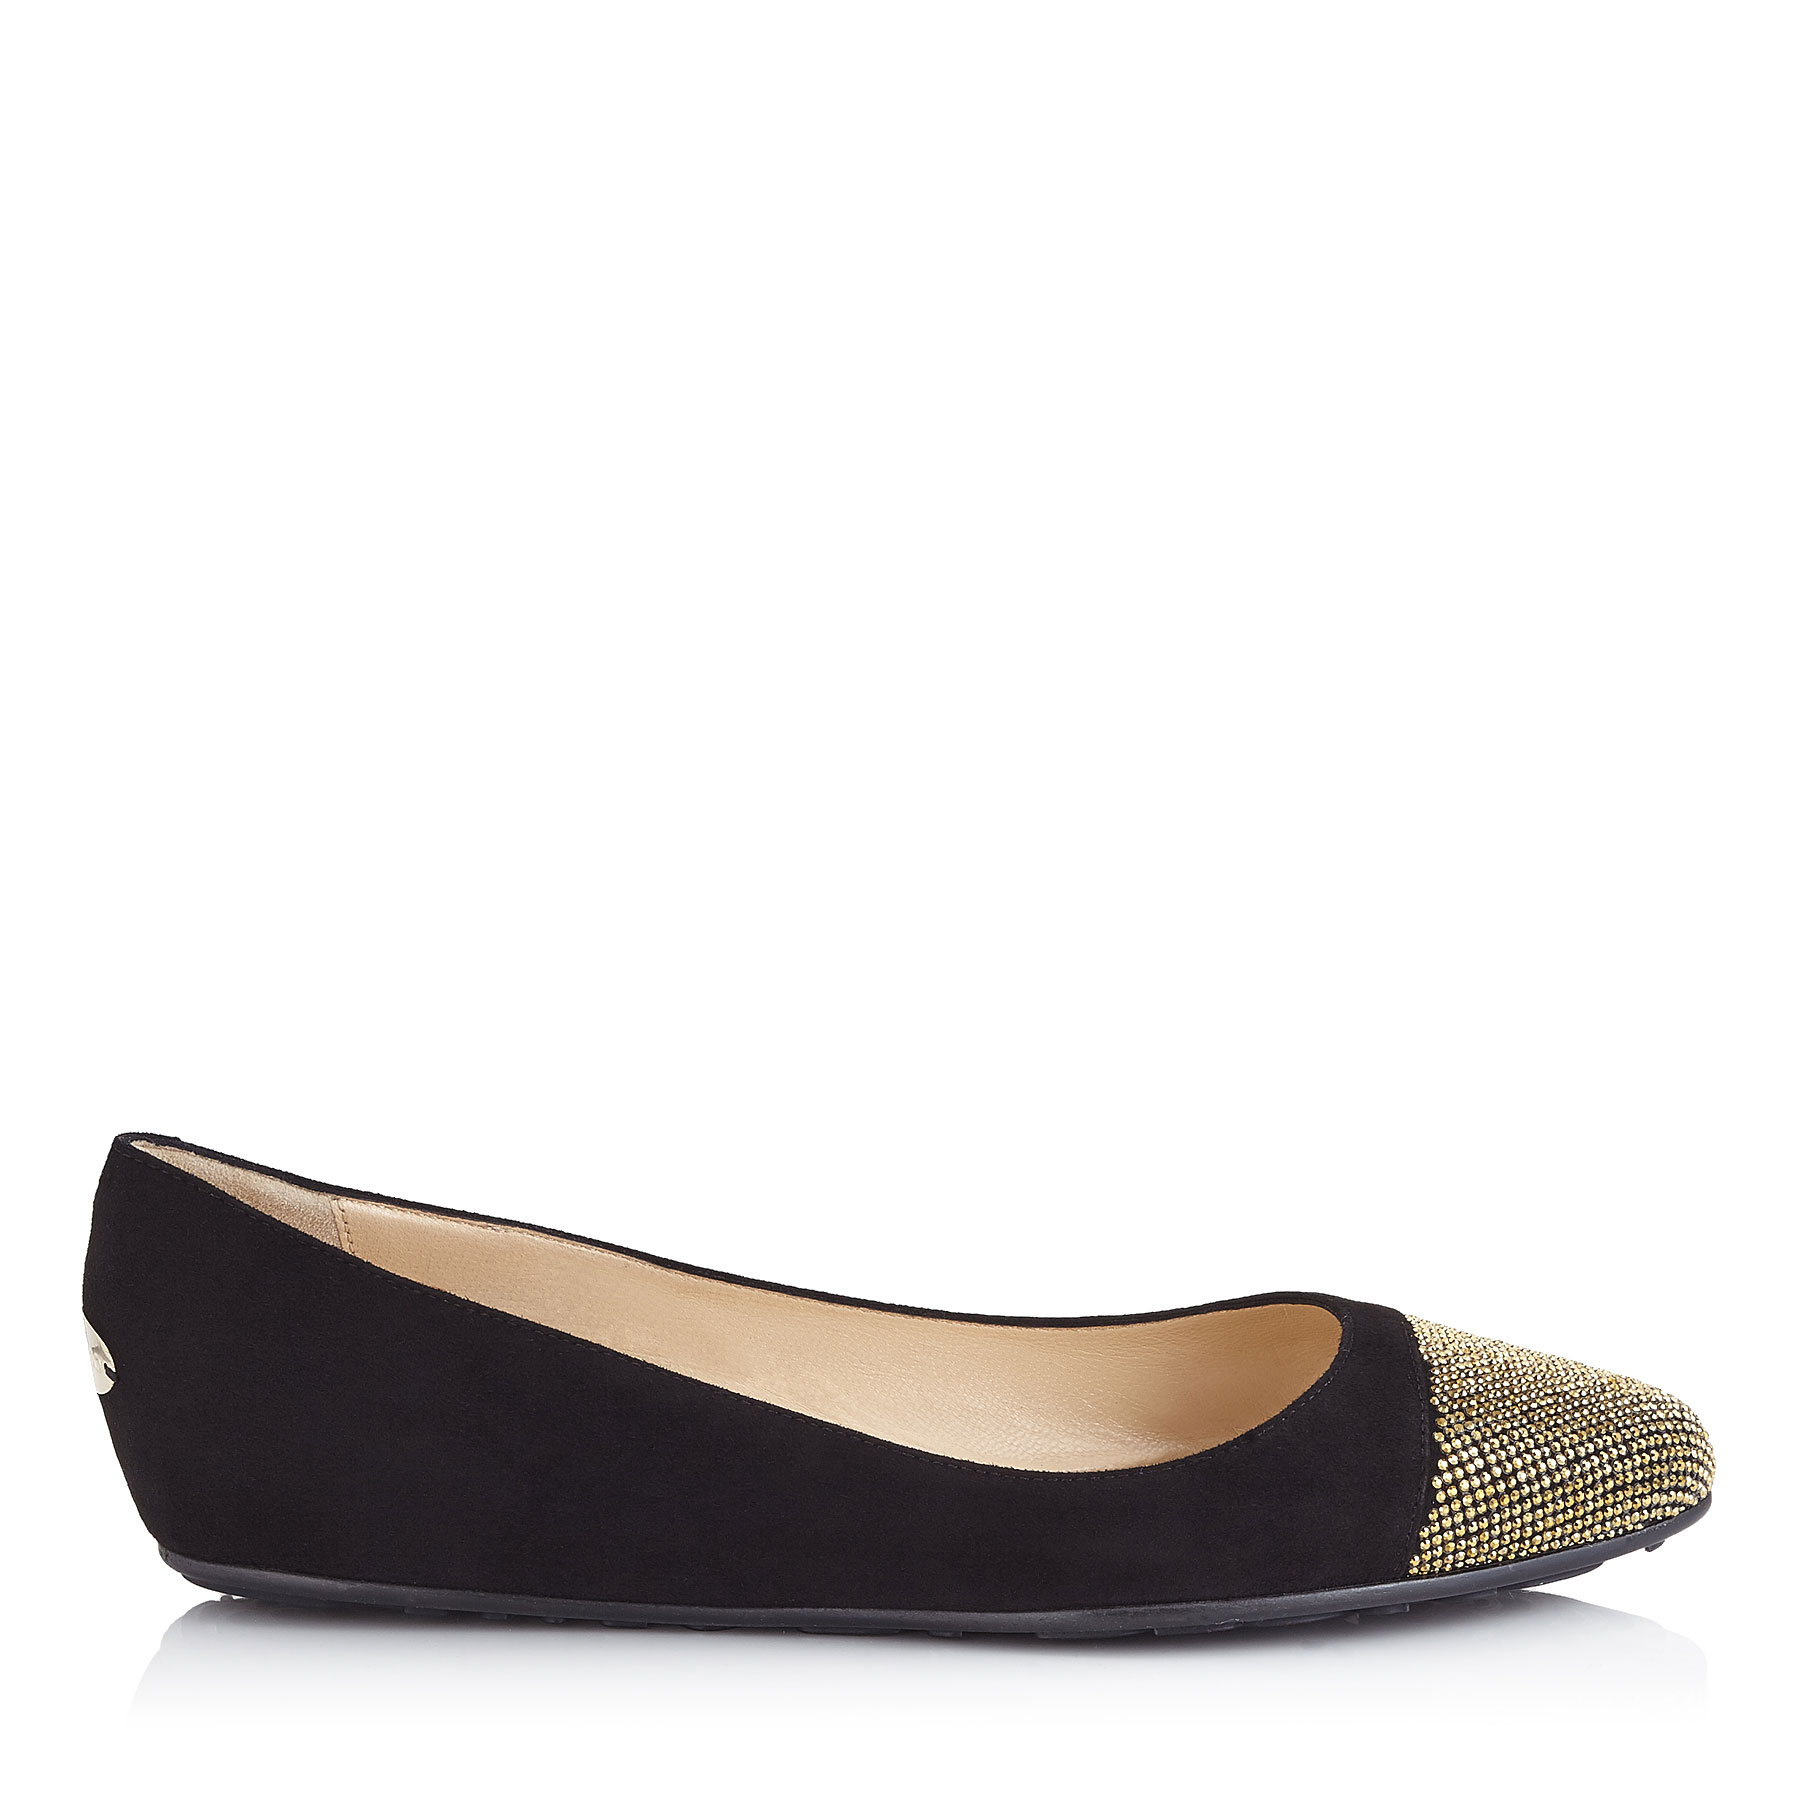 WAINE Black Suede and Metal Micro studs Ballet Flats by Jimmy Choo